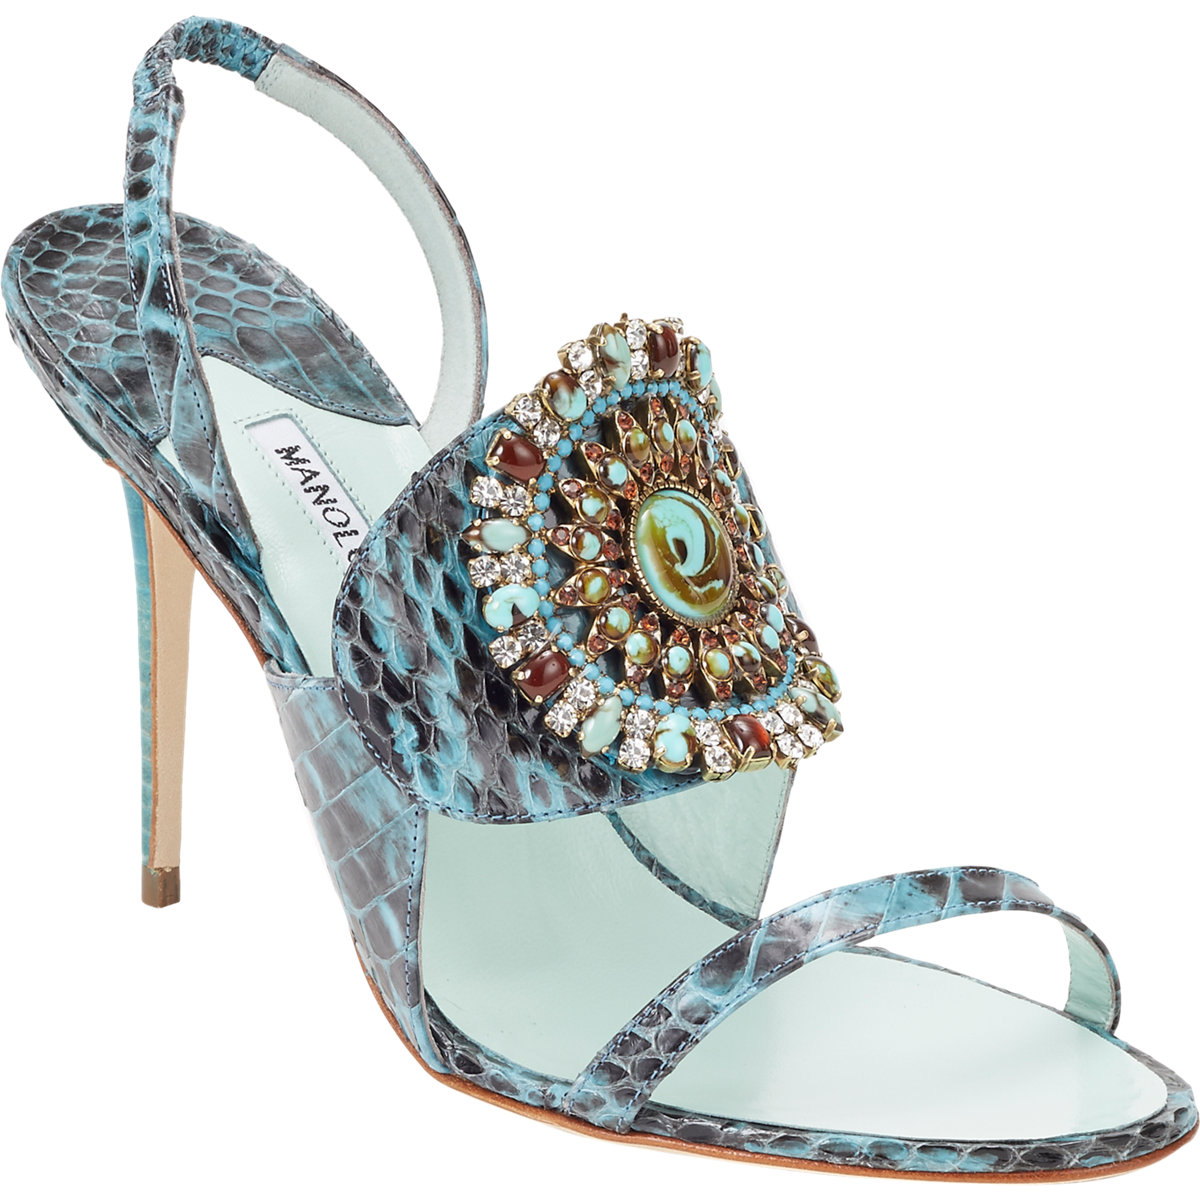 Lyst Manolo Blahnik Snakeskin Ronda Jeweled Sandals In Blue